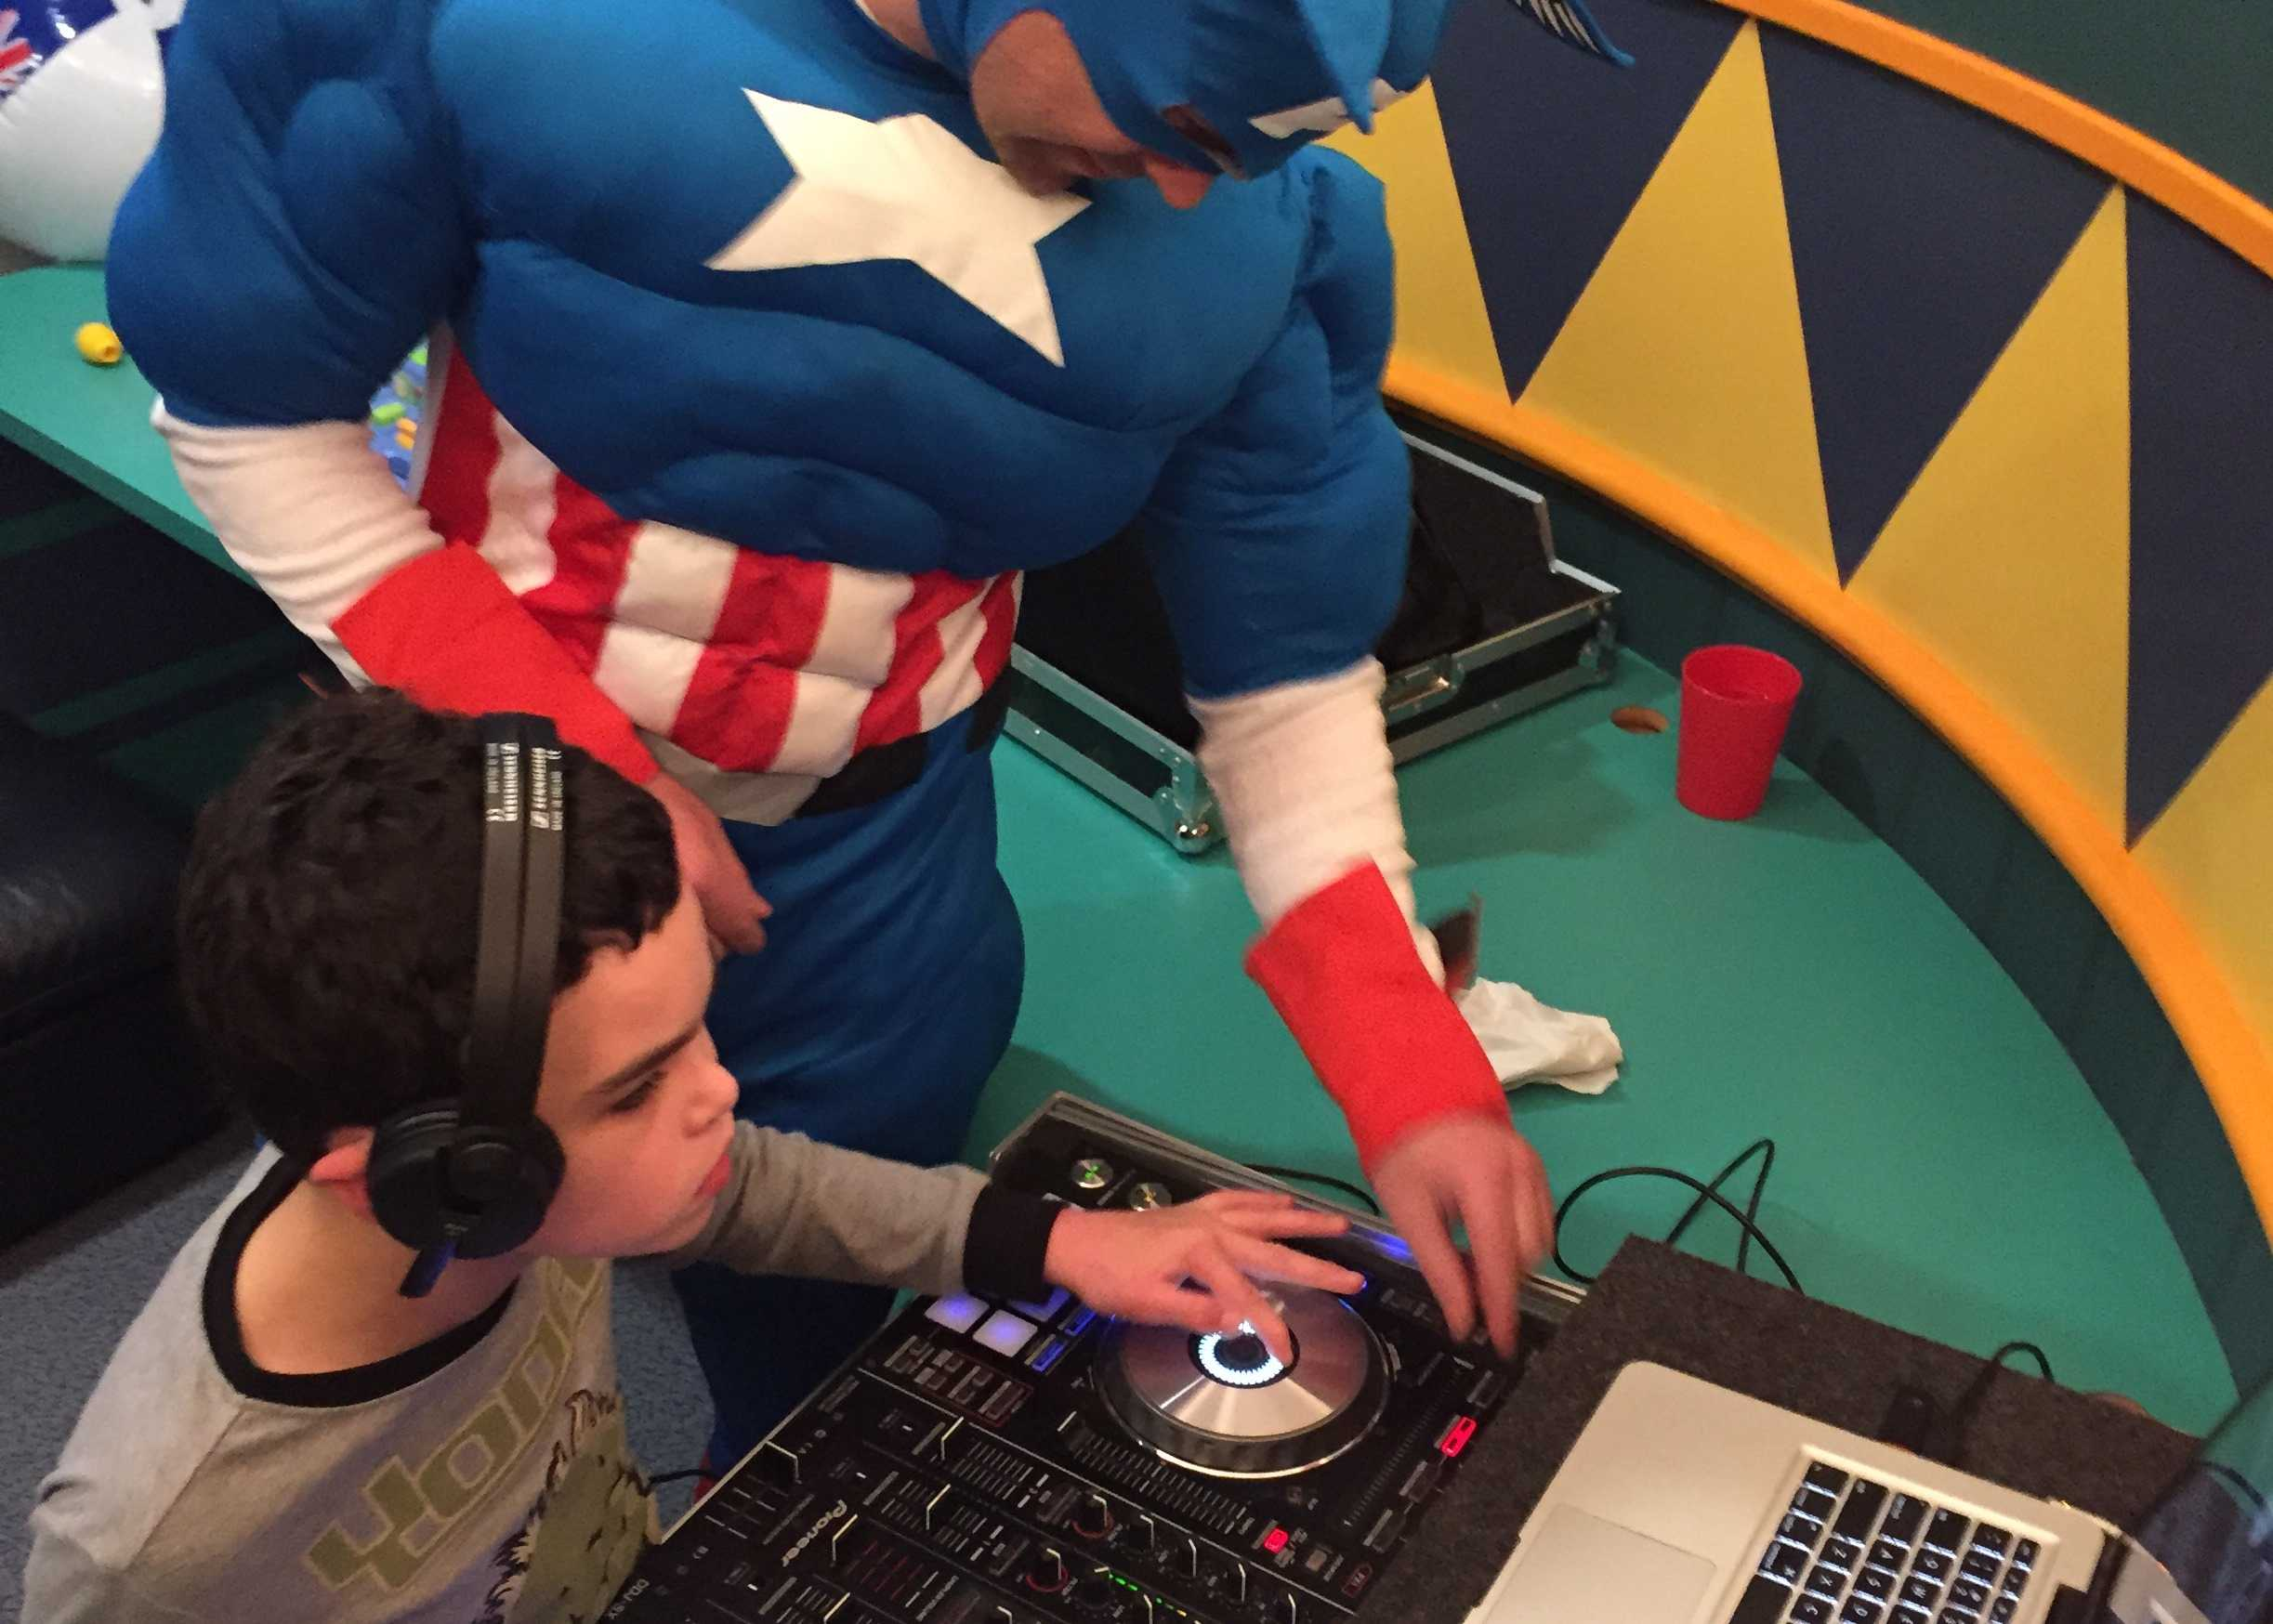 On the decks with DJ Captain America